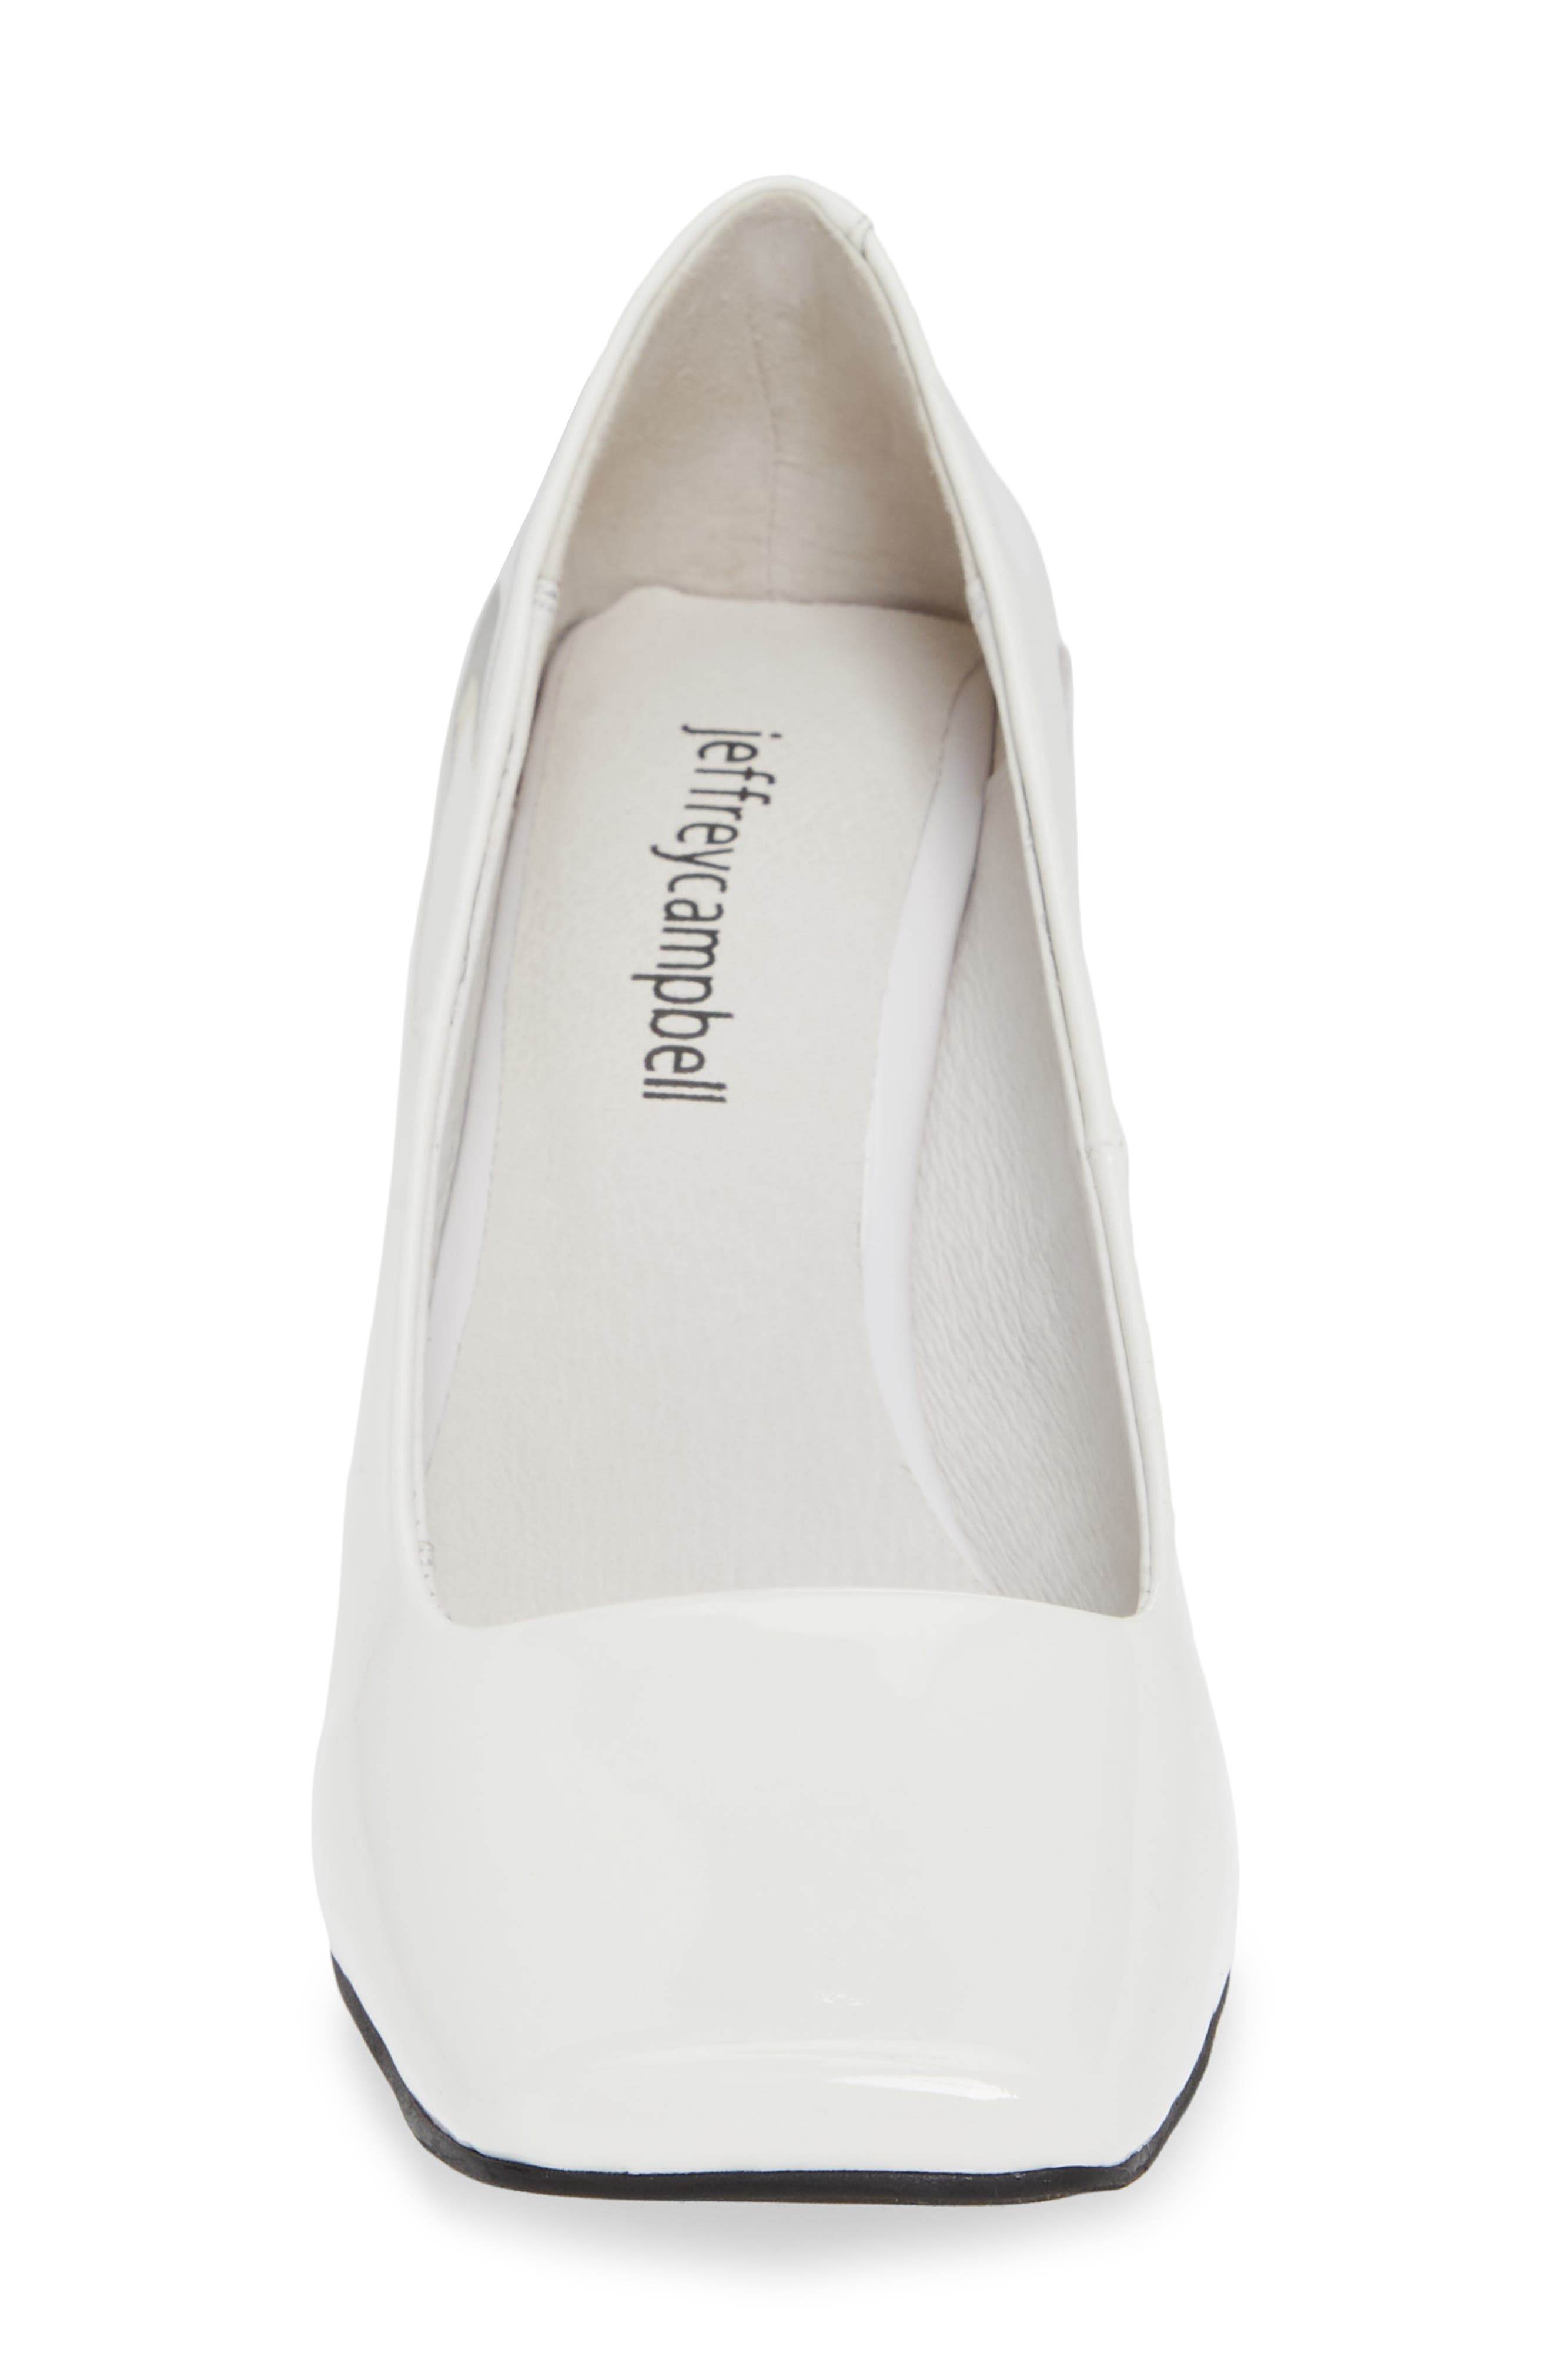 JEFFREY CAMPBELL, Graff Clear Heel Pump, Alternate thumbnail 4, color, WHITE PATENT LEATHER